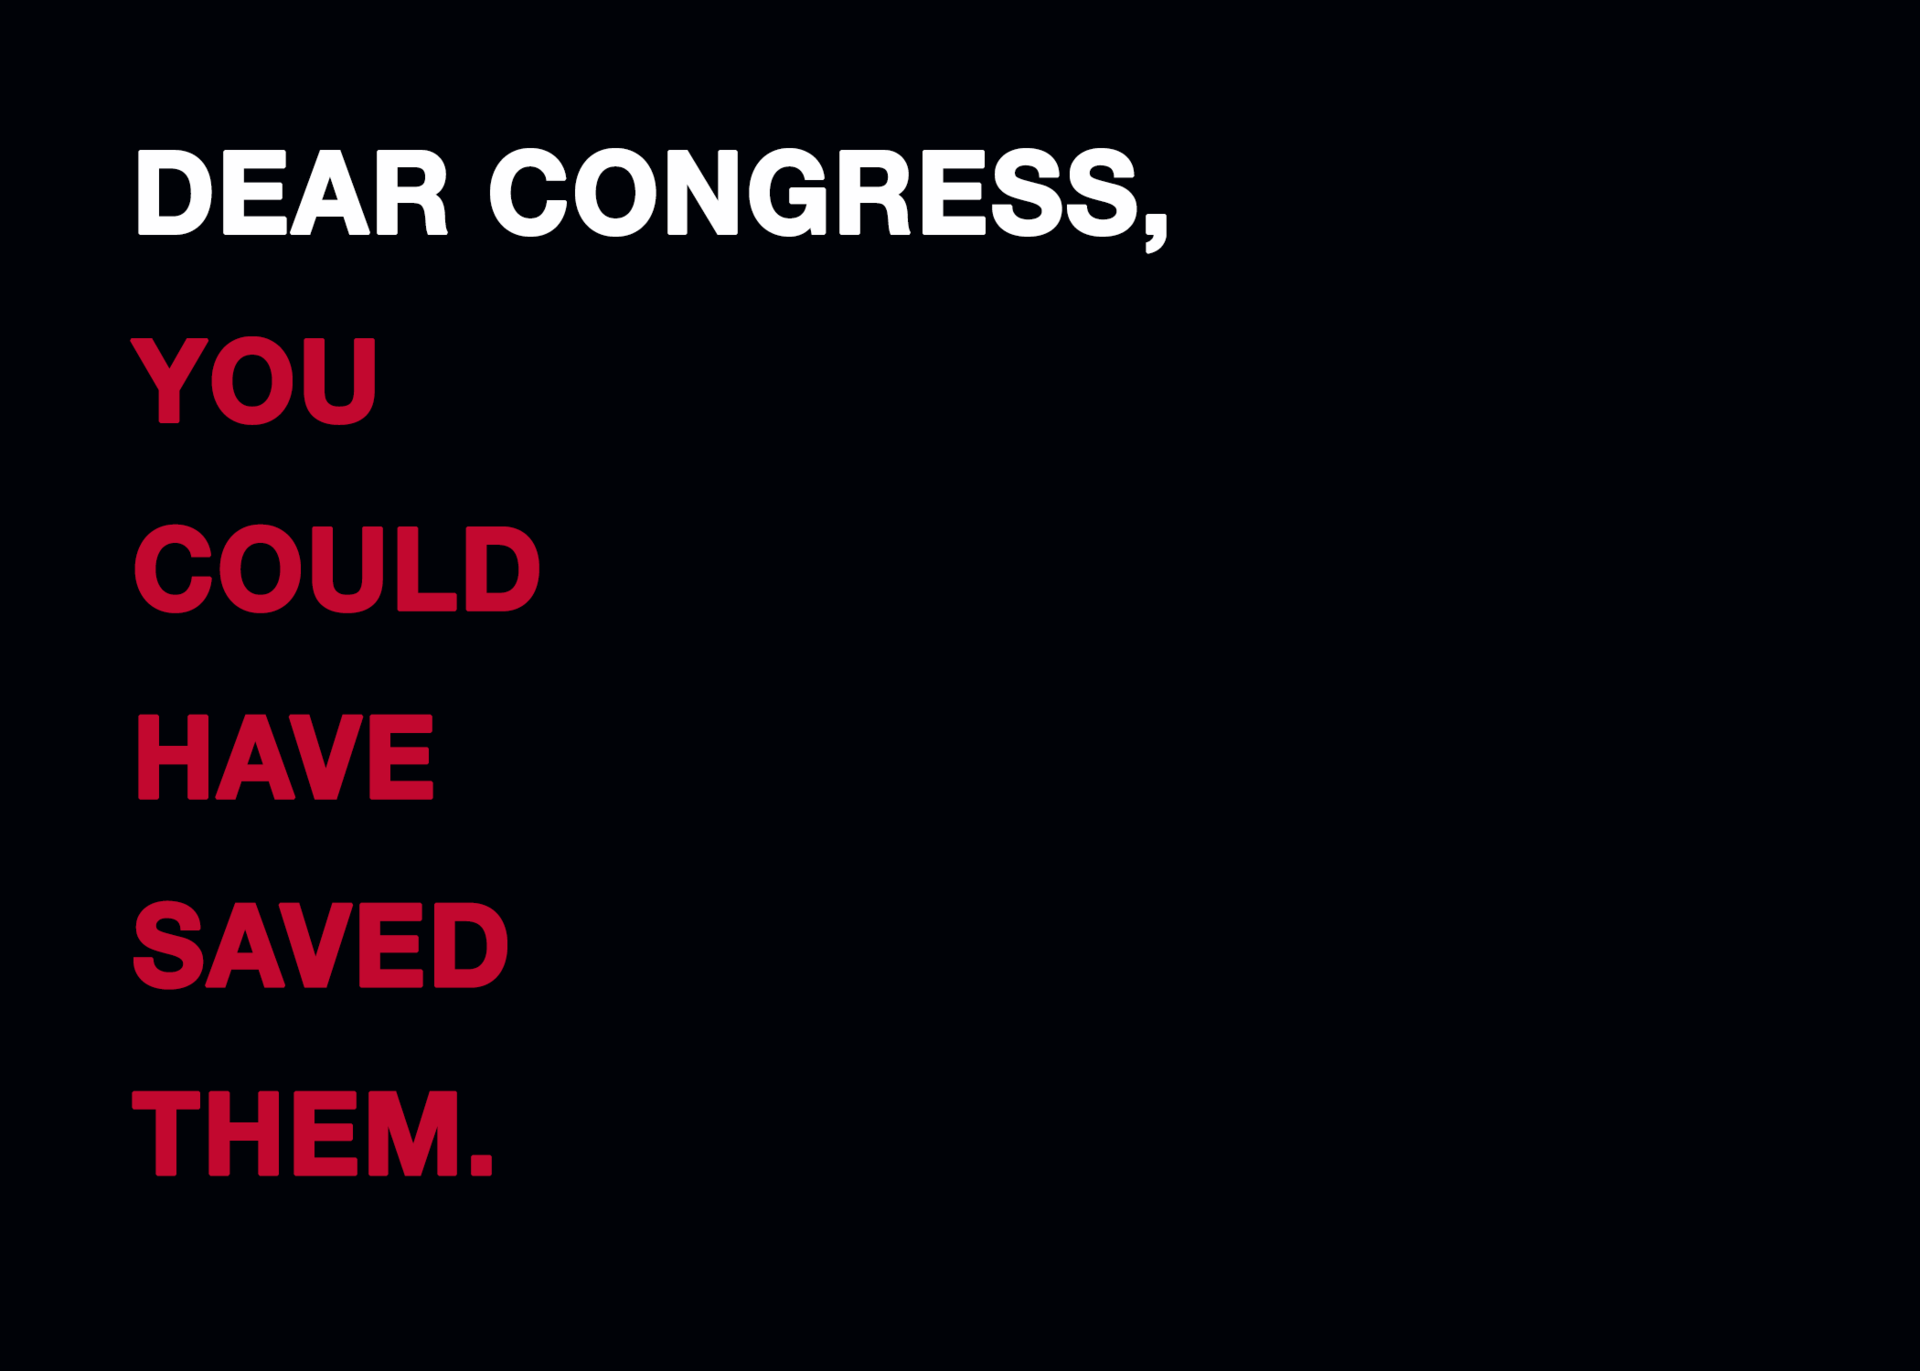 DEAR CONGRESS - The Fight for Gun Control Store